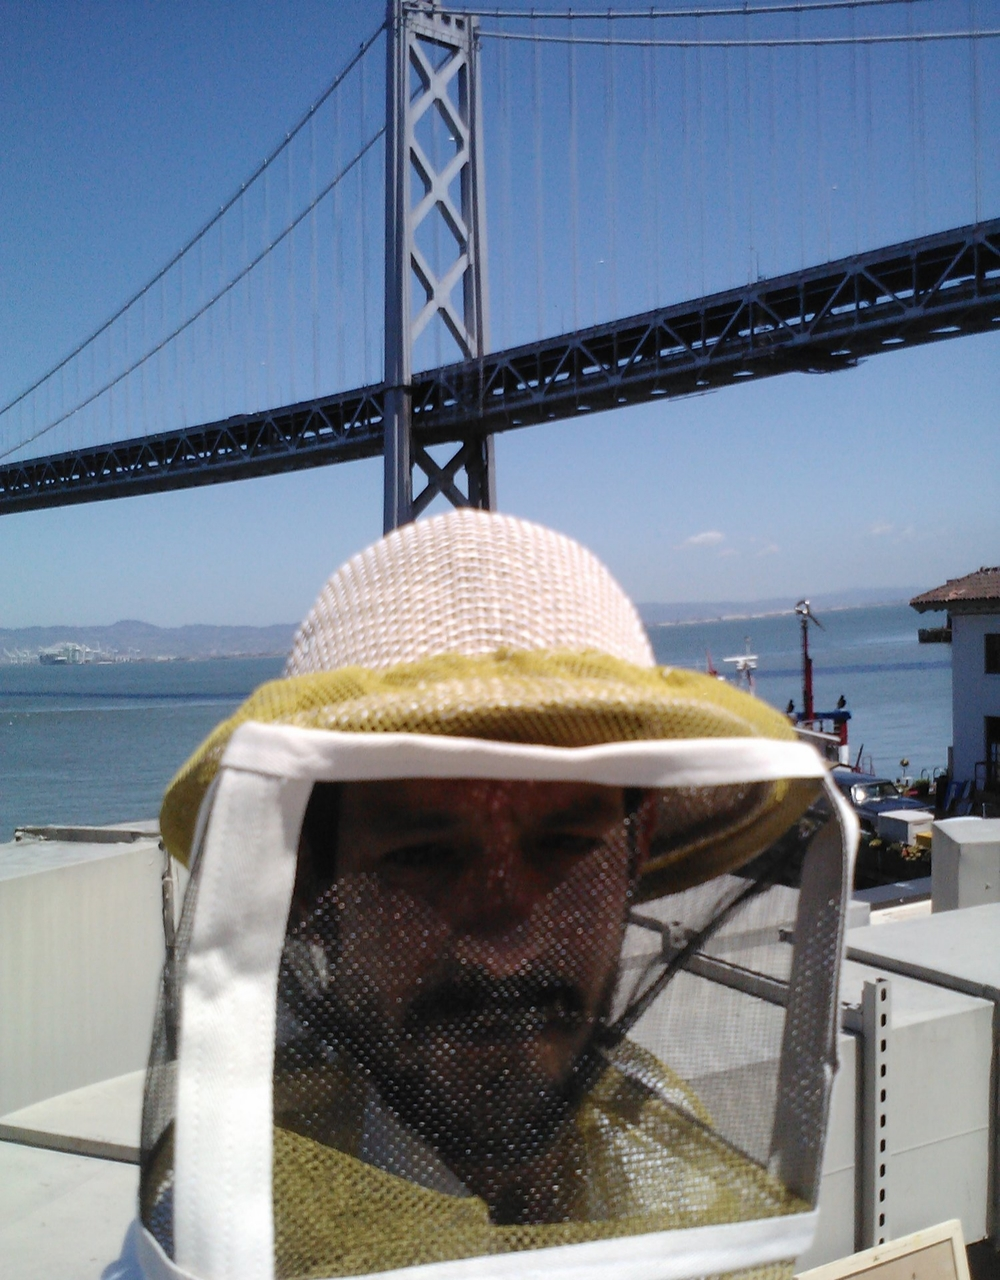 eric in bee gear.jpg